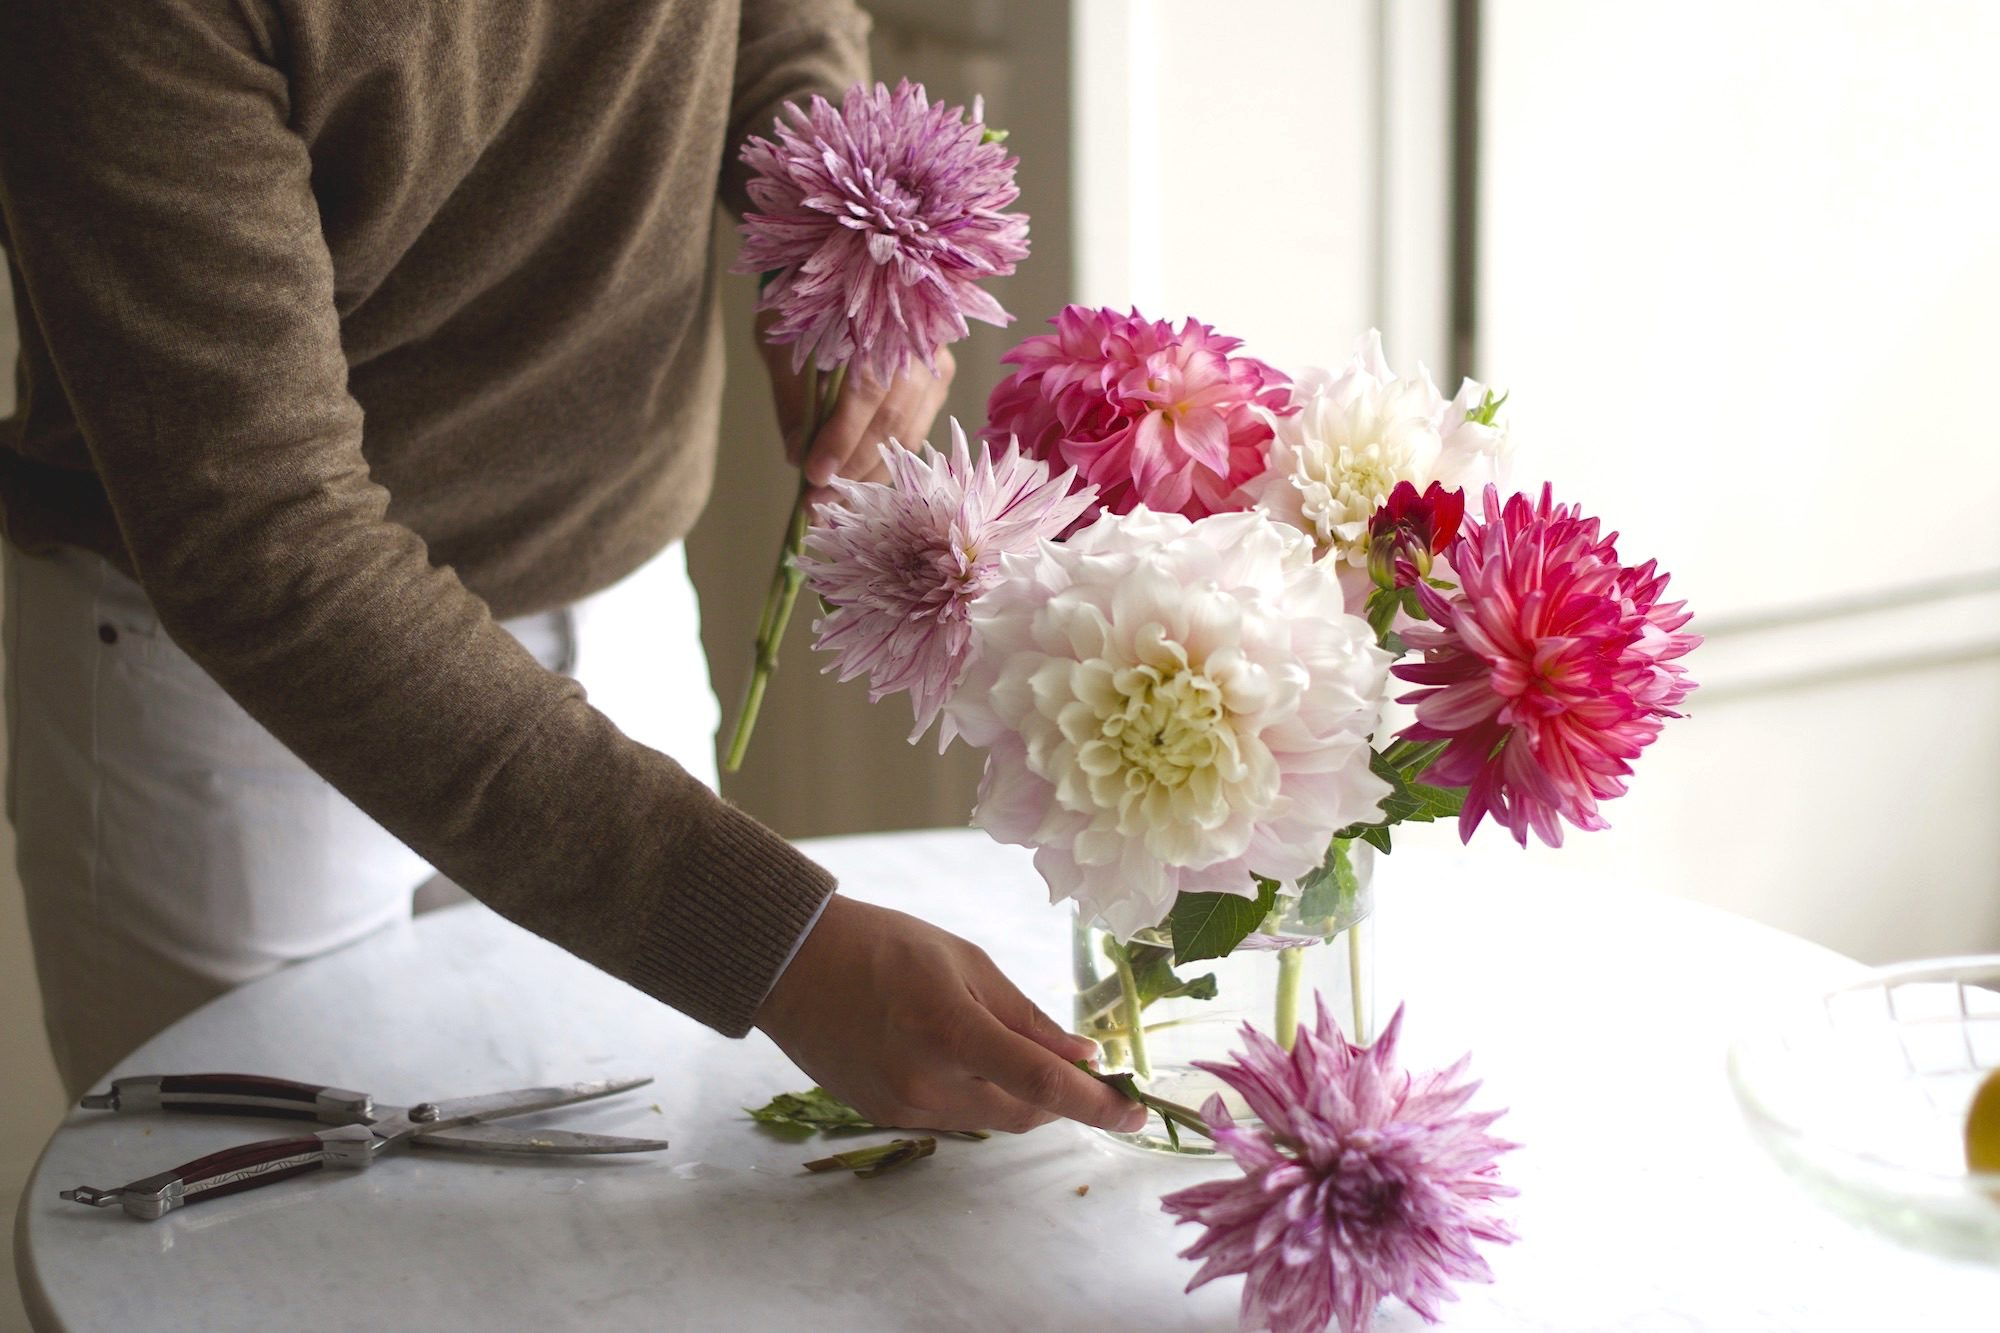 Frank seen arranging delicate pink and purple dahlias at his Paris apartment.